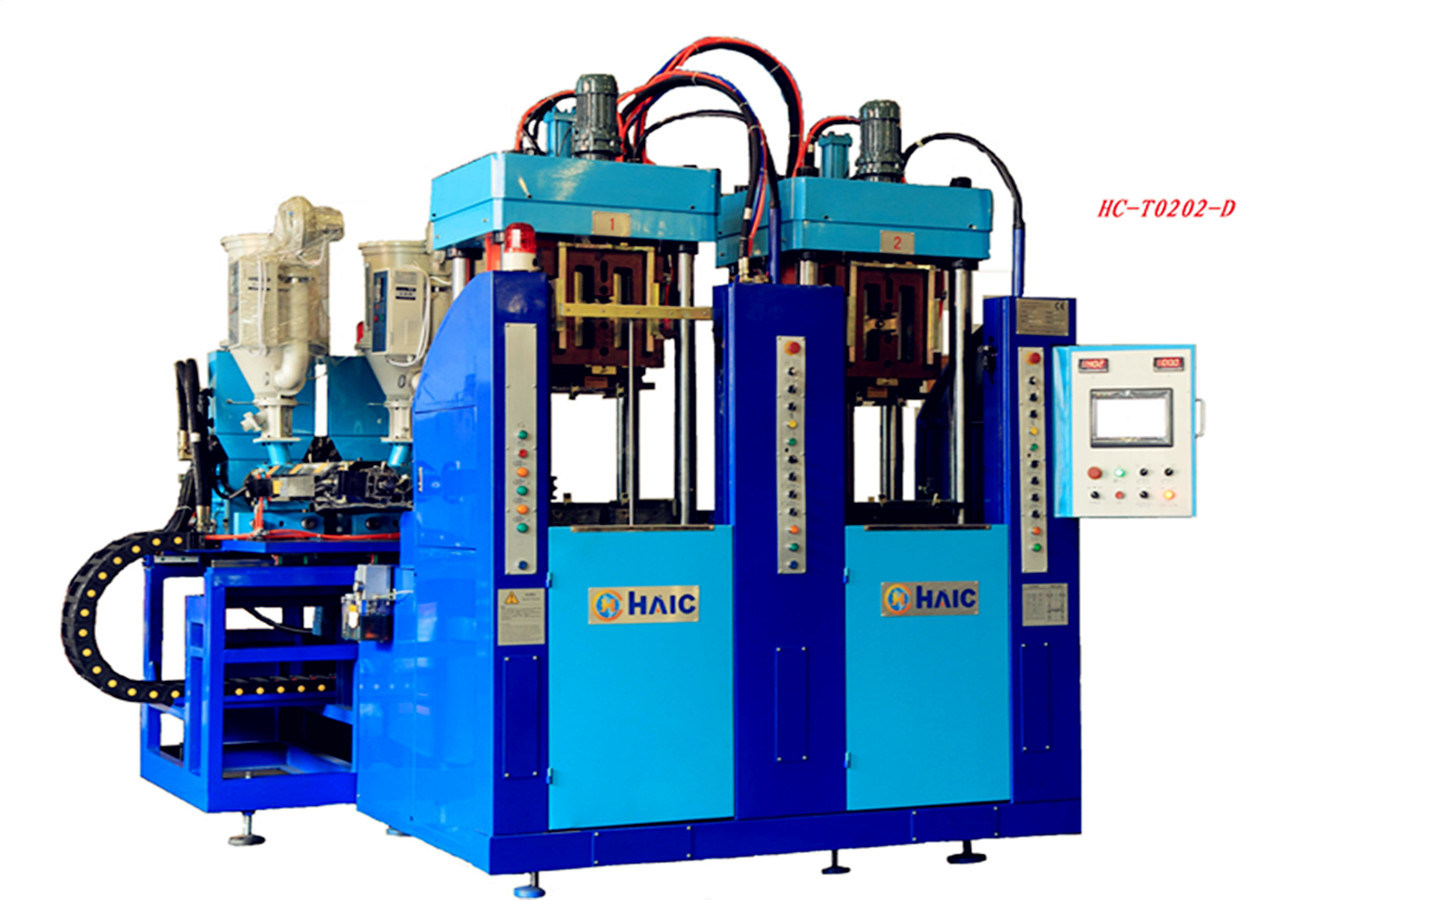 Demag Injection Molding Machine Manual